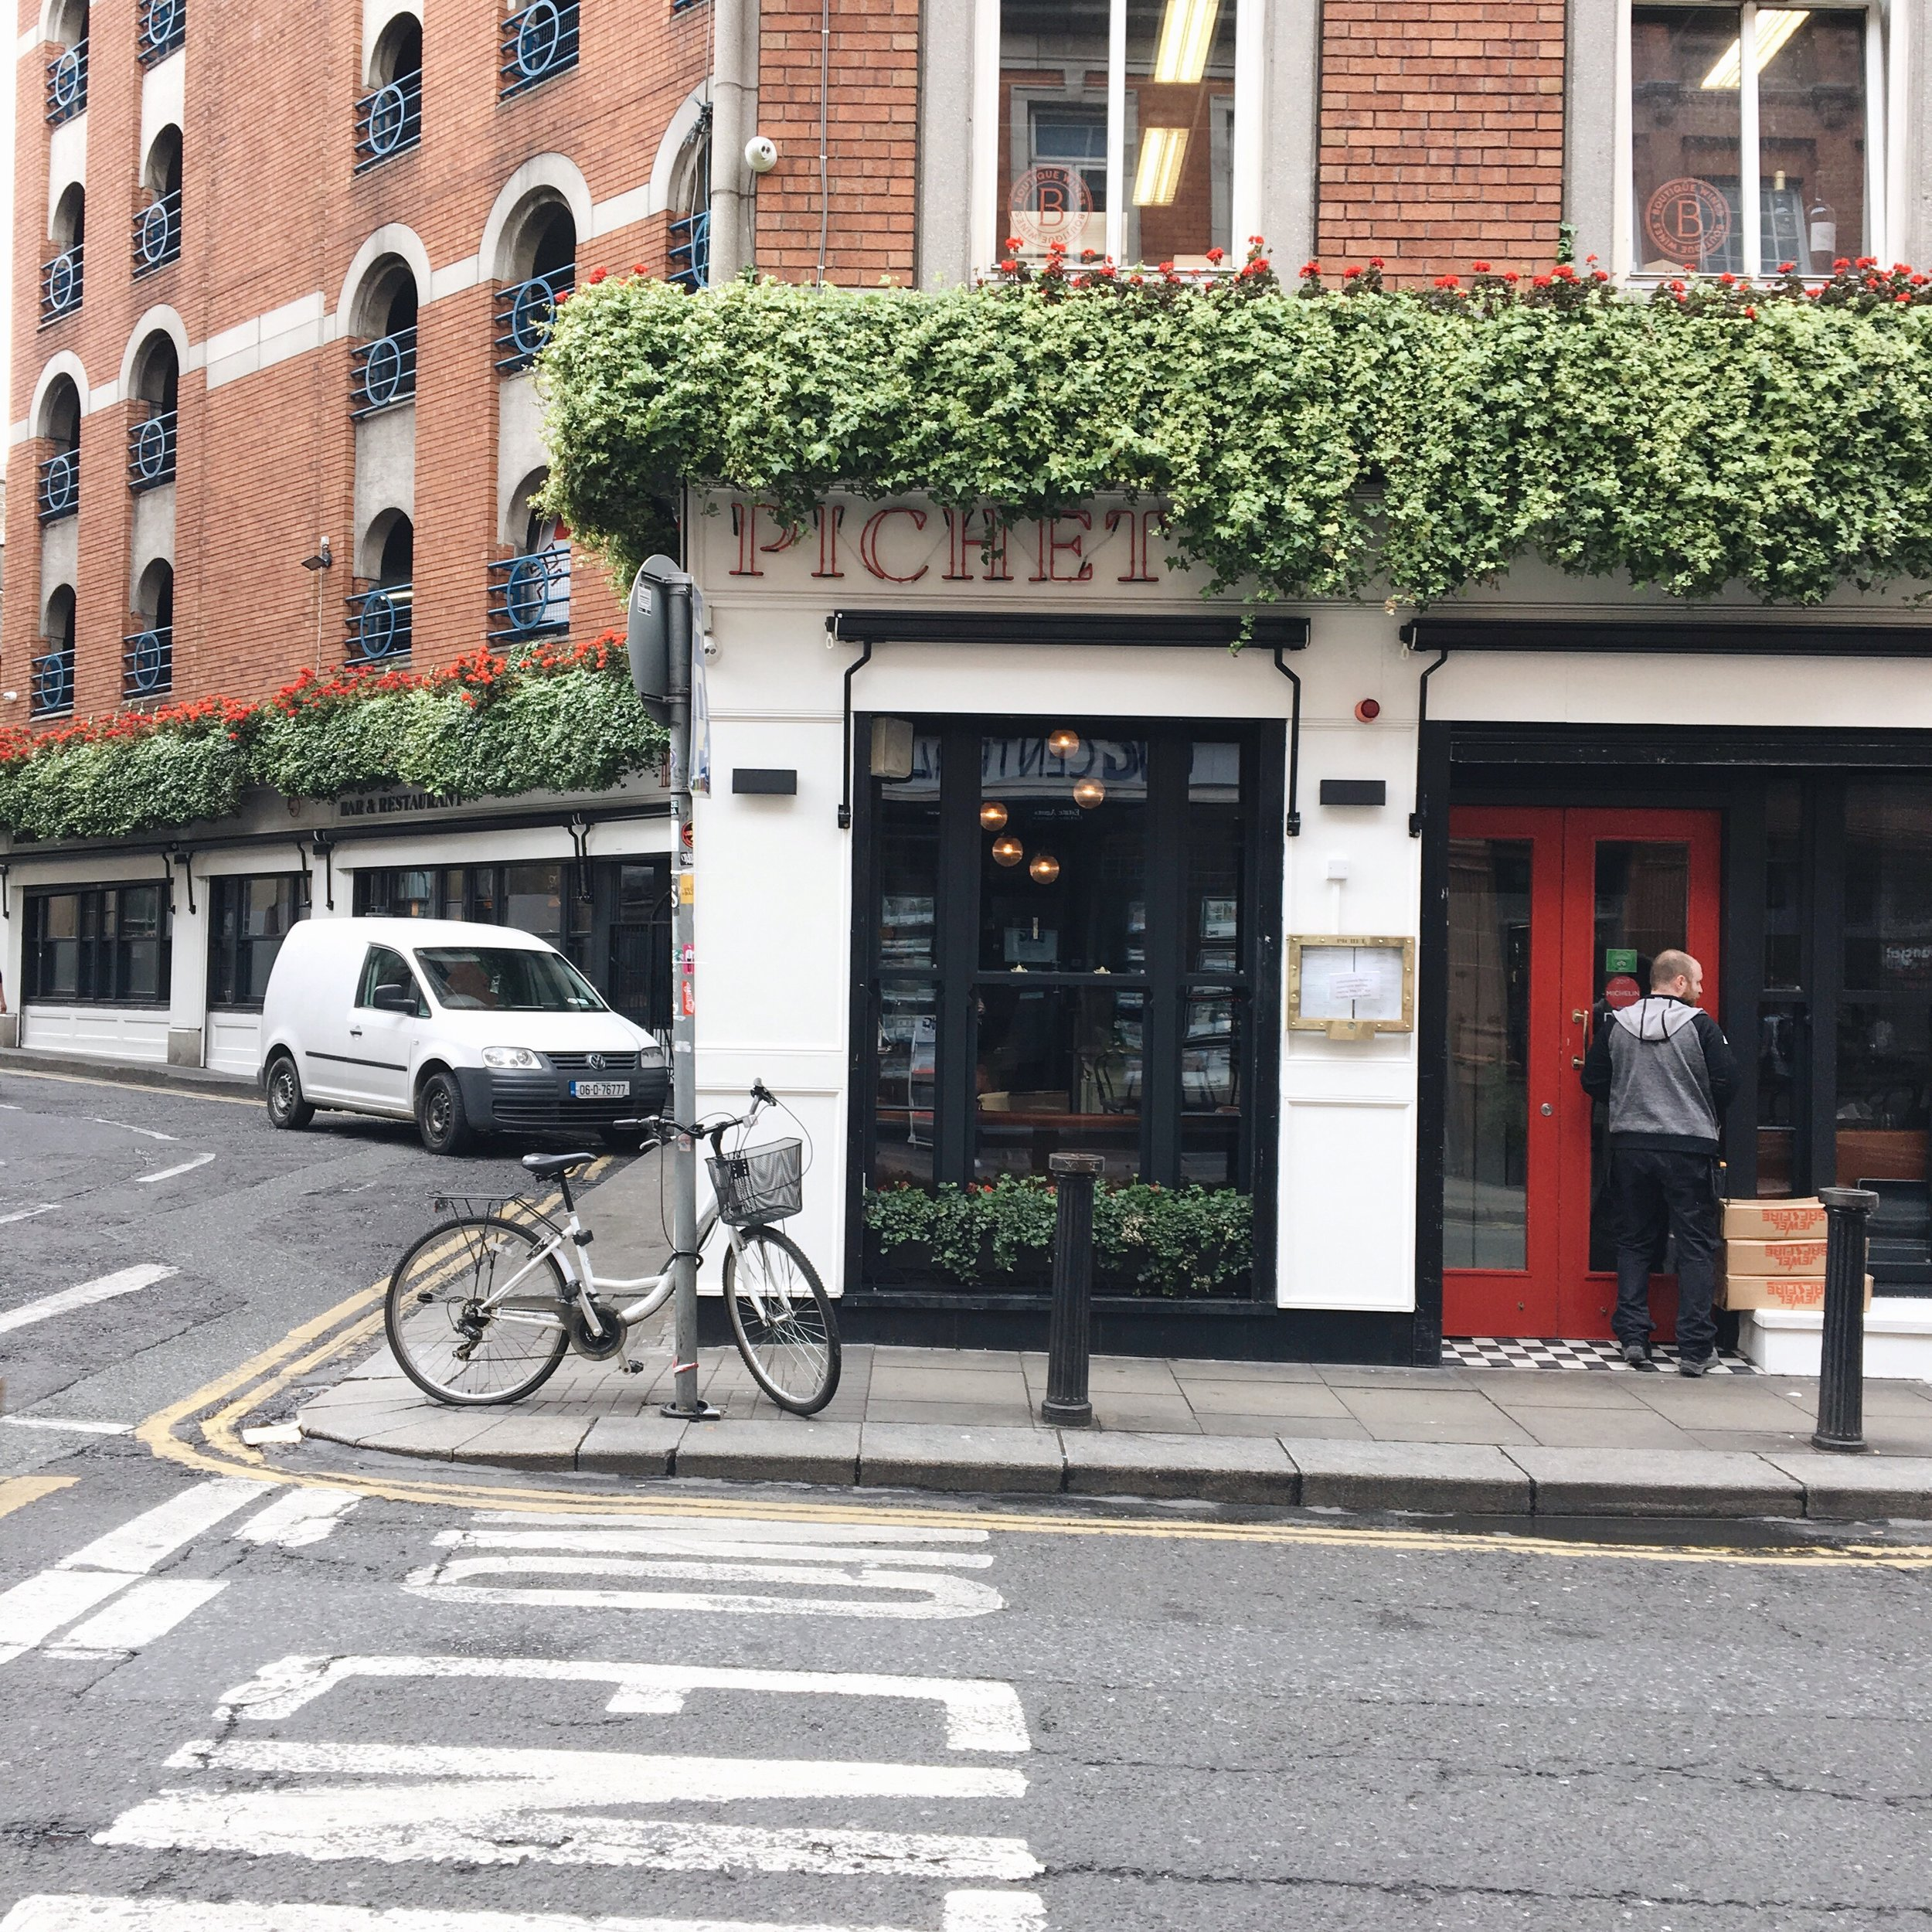 Dublin Streets - One week in Ireland Itinerary - True North Paper Co. Blog